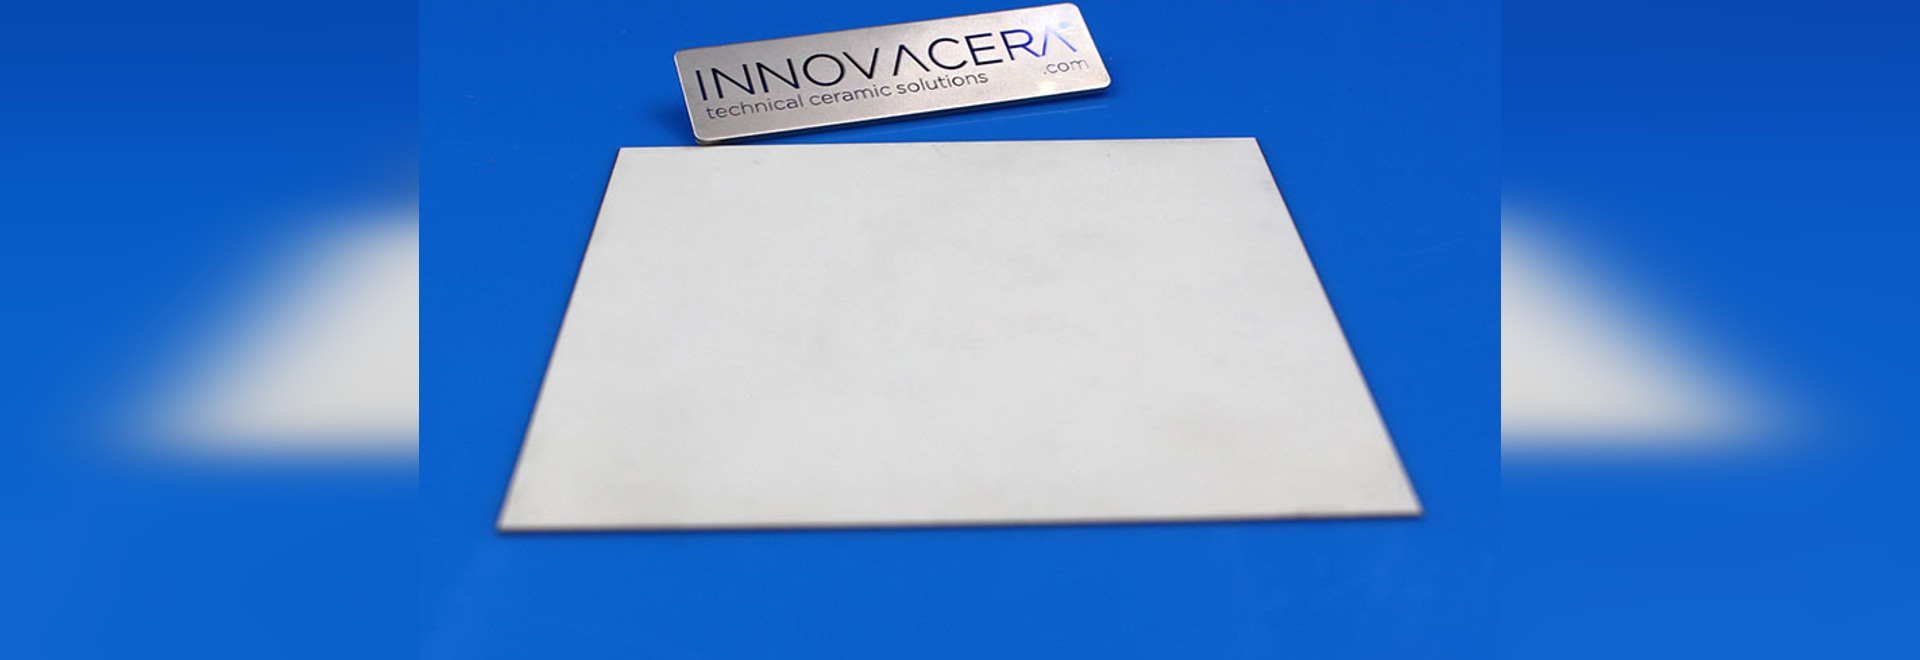 Silicon Nitride Ceramic Substrate for Electronics